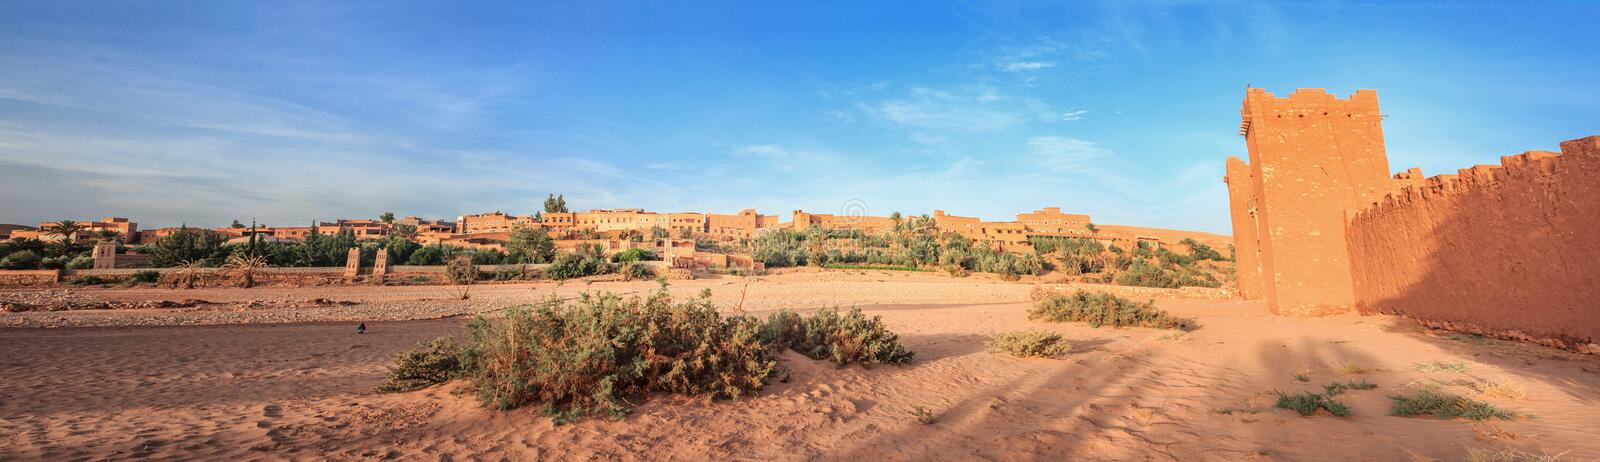 Entrance of ksar Ait Benhaddou, Ouarzazate. Ancient clay city in Morocco.  royalty free stock images